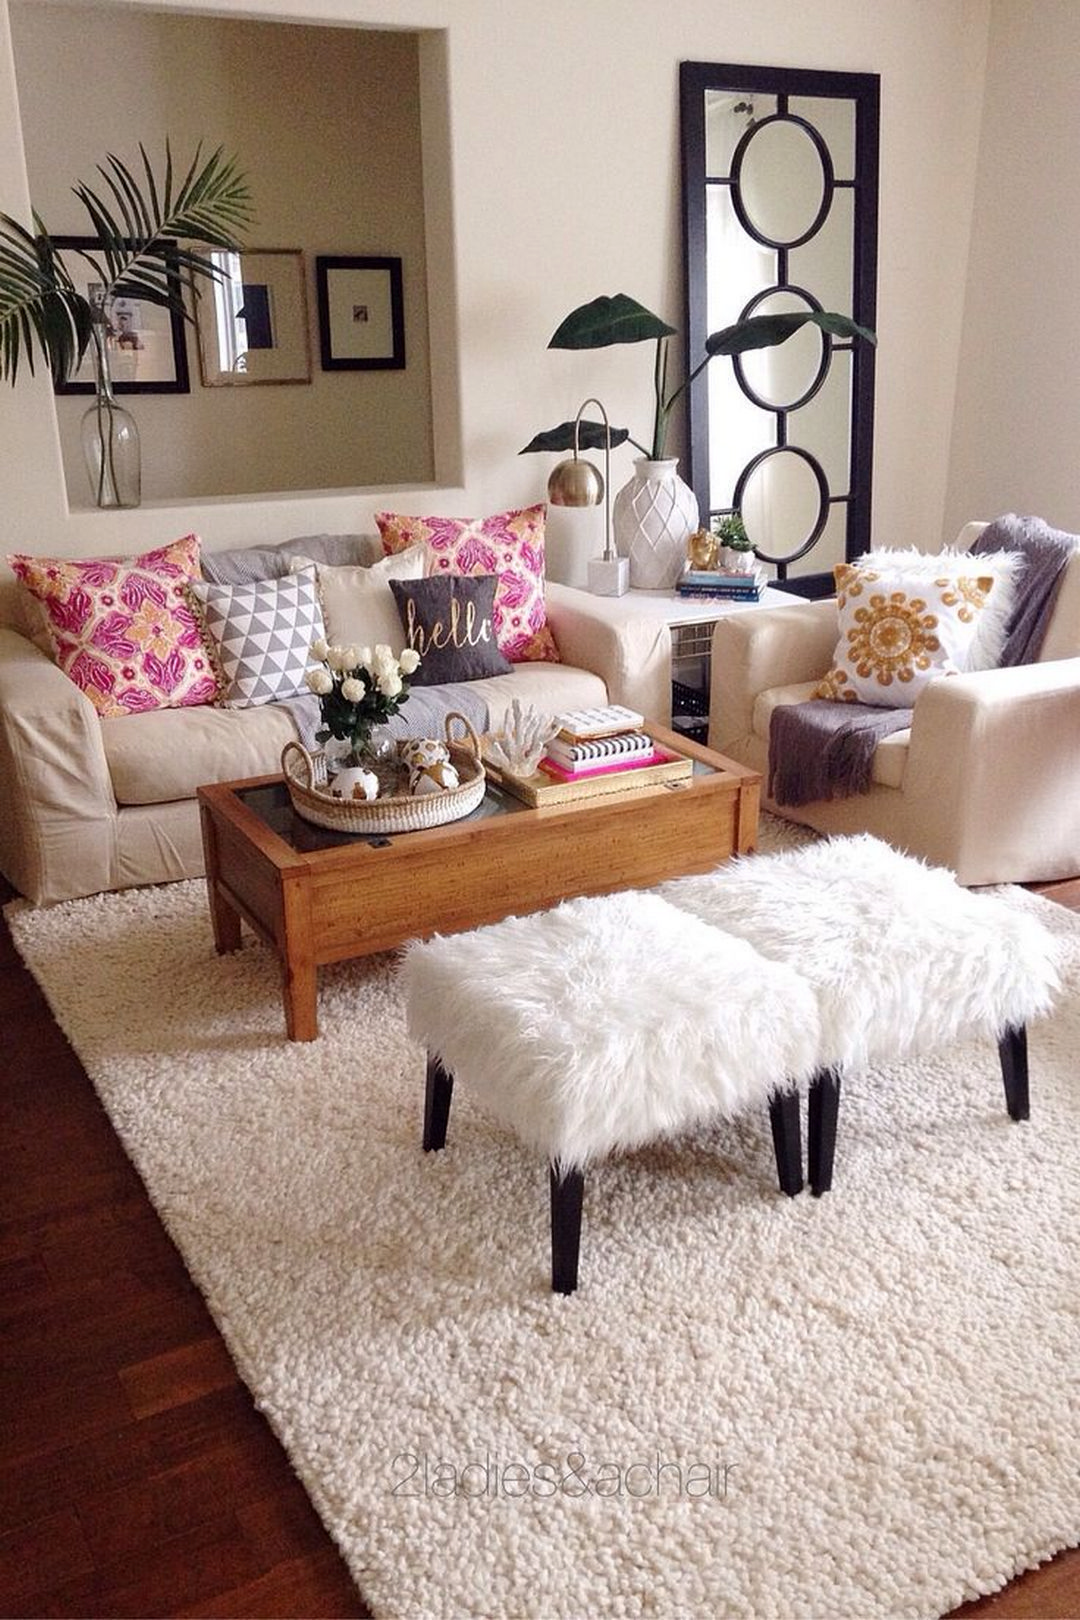 Living Room Remodel 5 Tips To Revamp Your Space On A Budget Cute Living Room Apartment Living Room Small Apartment Decorating